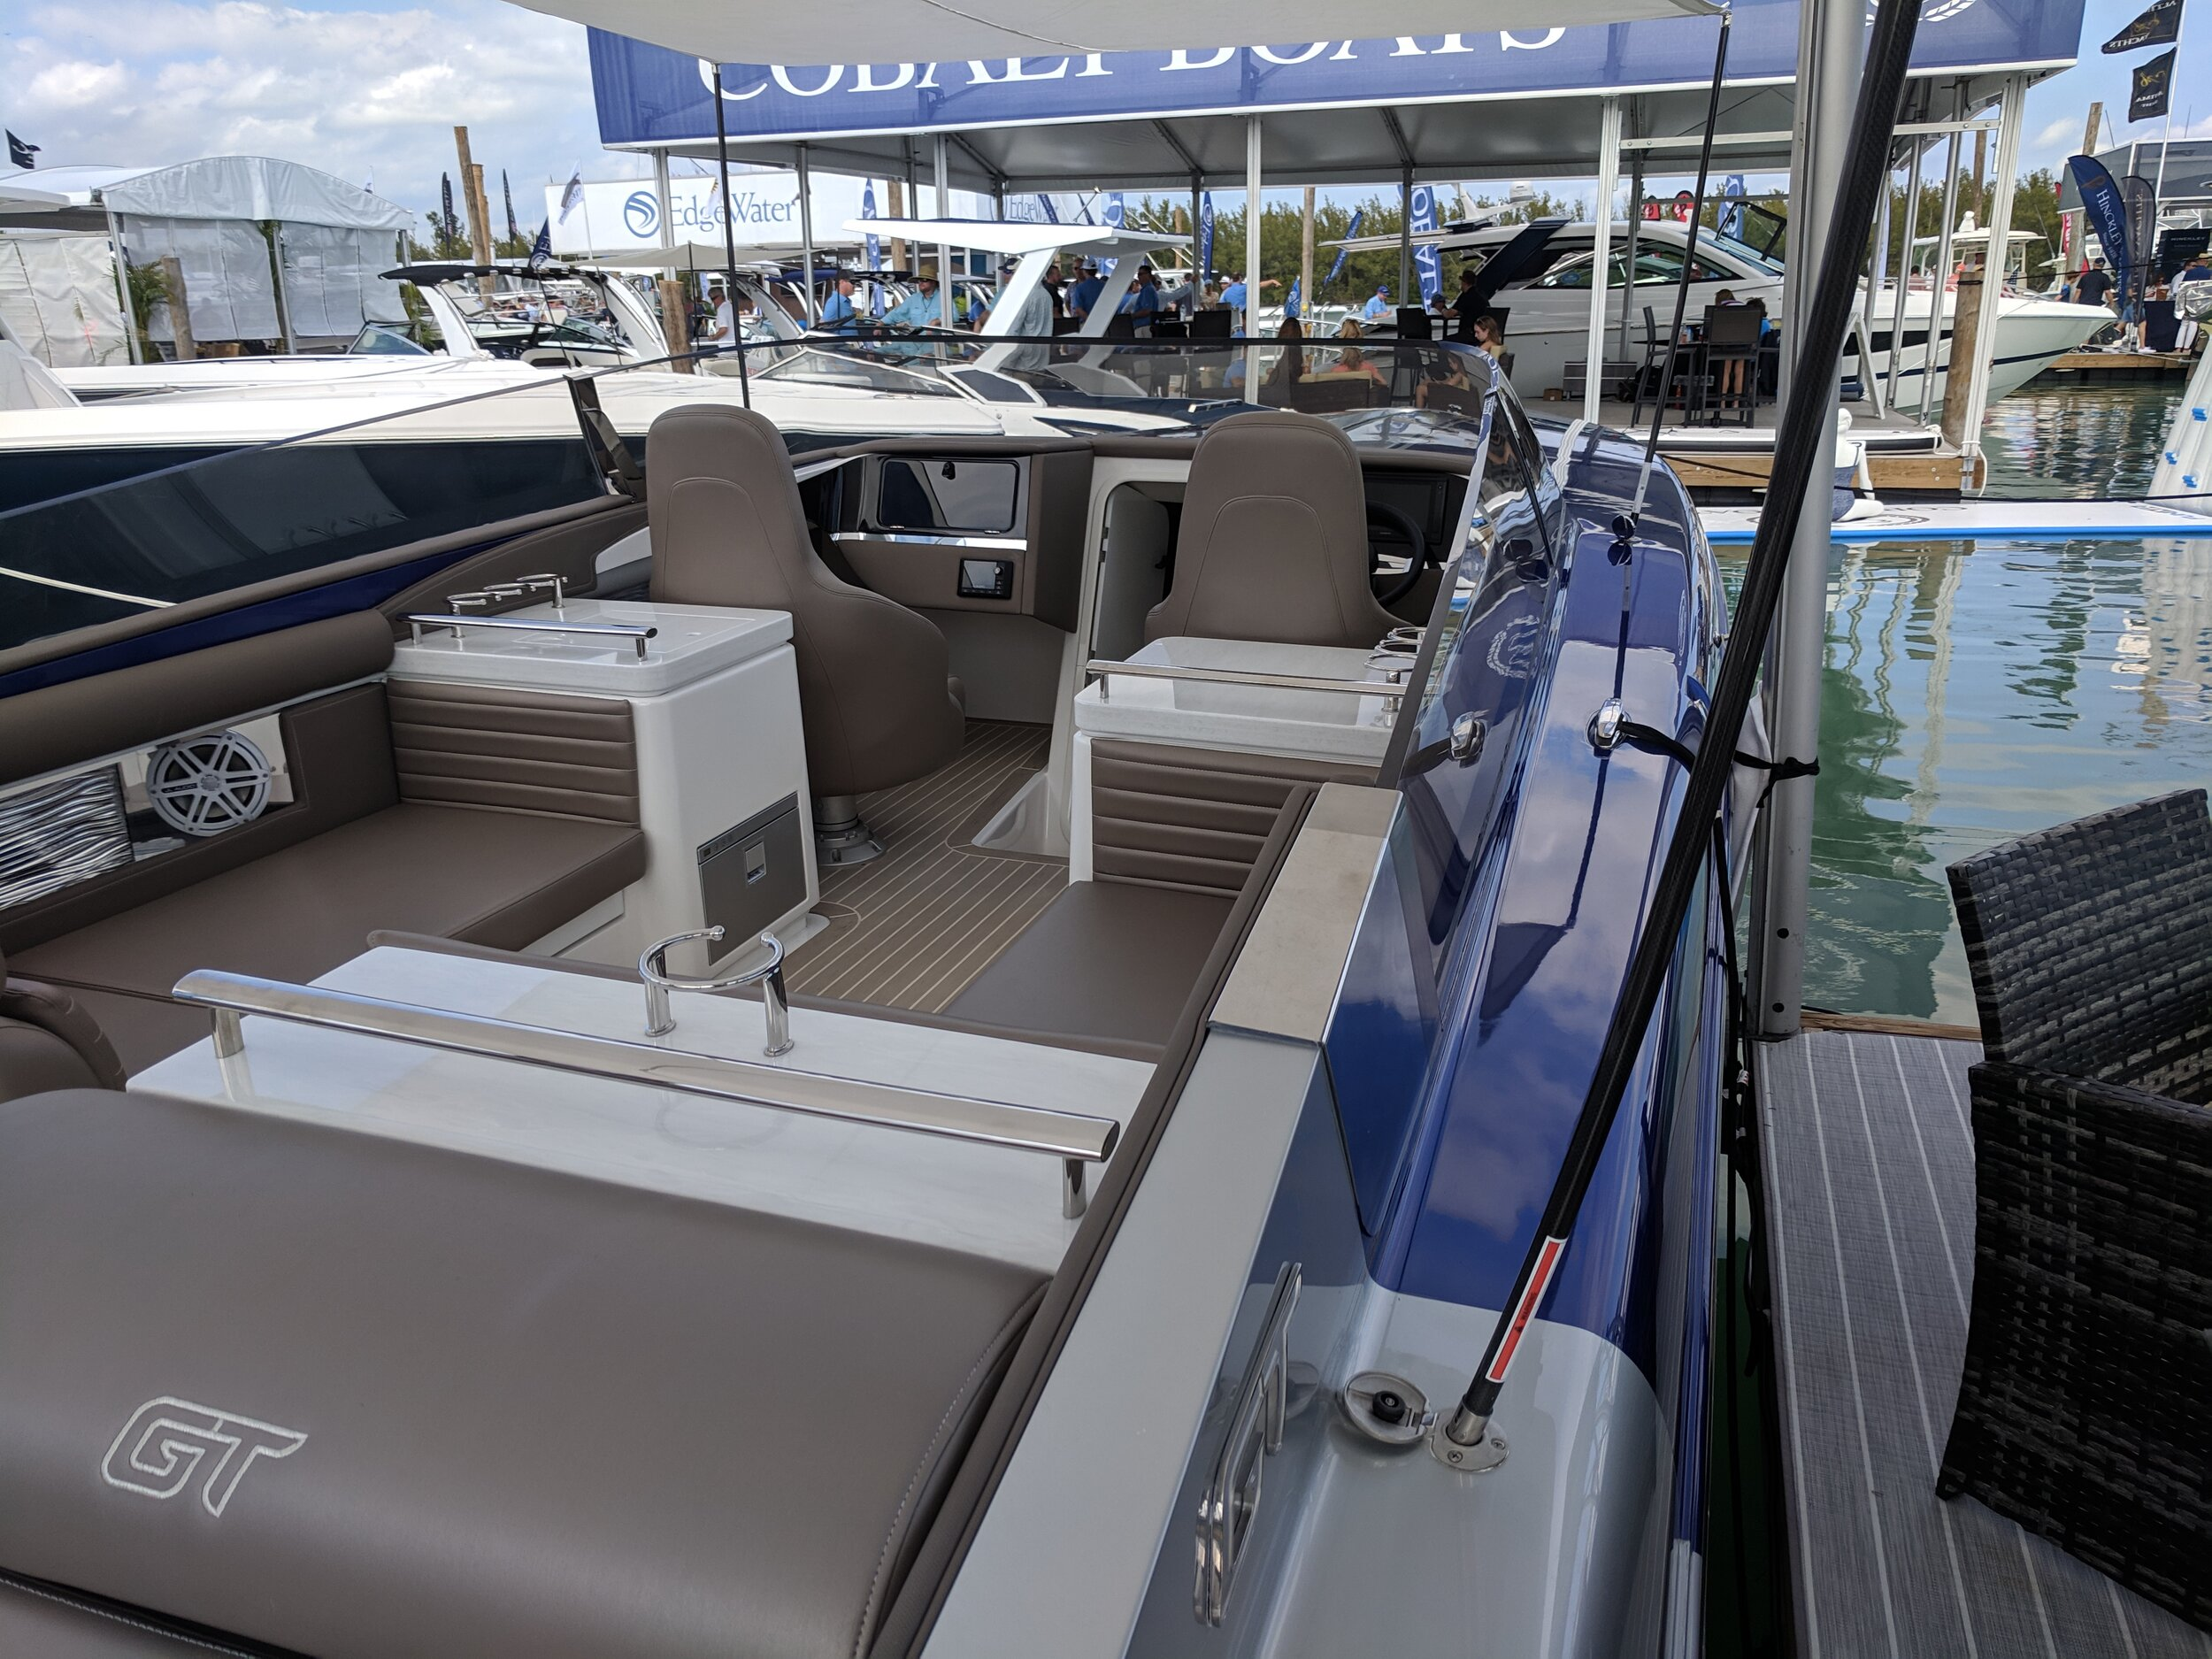 I don't love the seating in the Donzi GT, but you sure have a lot of room. The big Donzi is definitely going for the luxury market, full windshield, outboard power, and champagne glass holders.